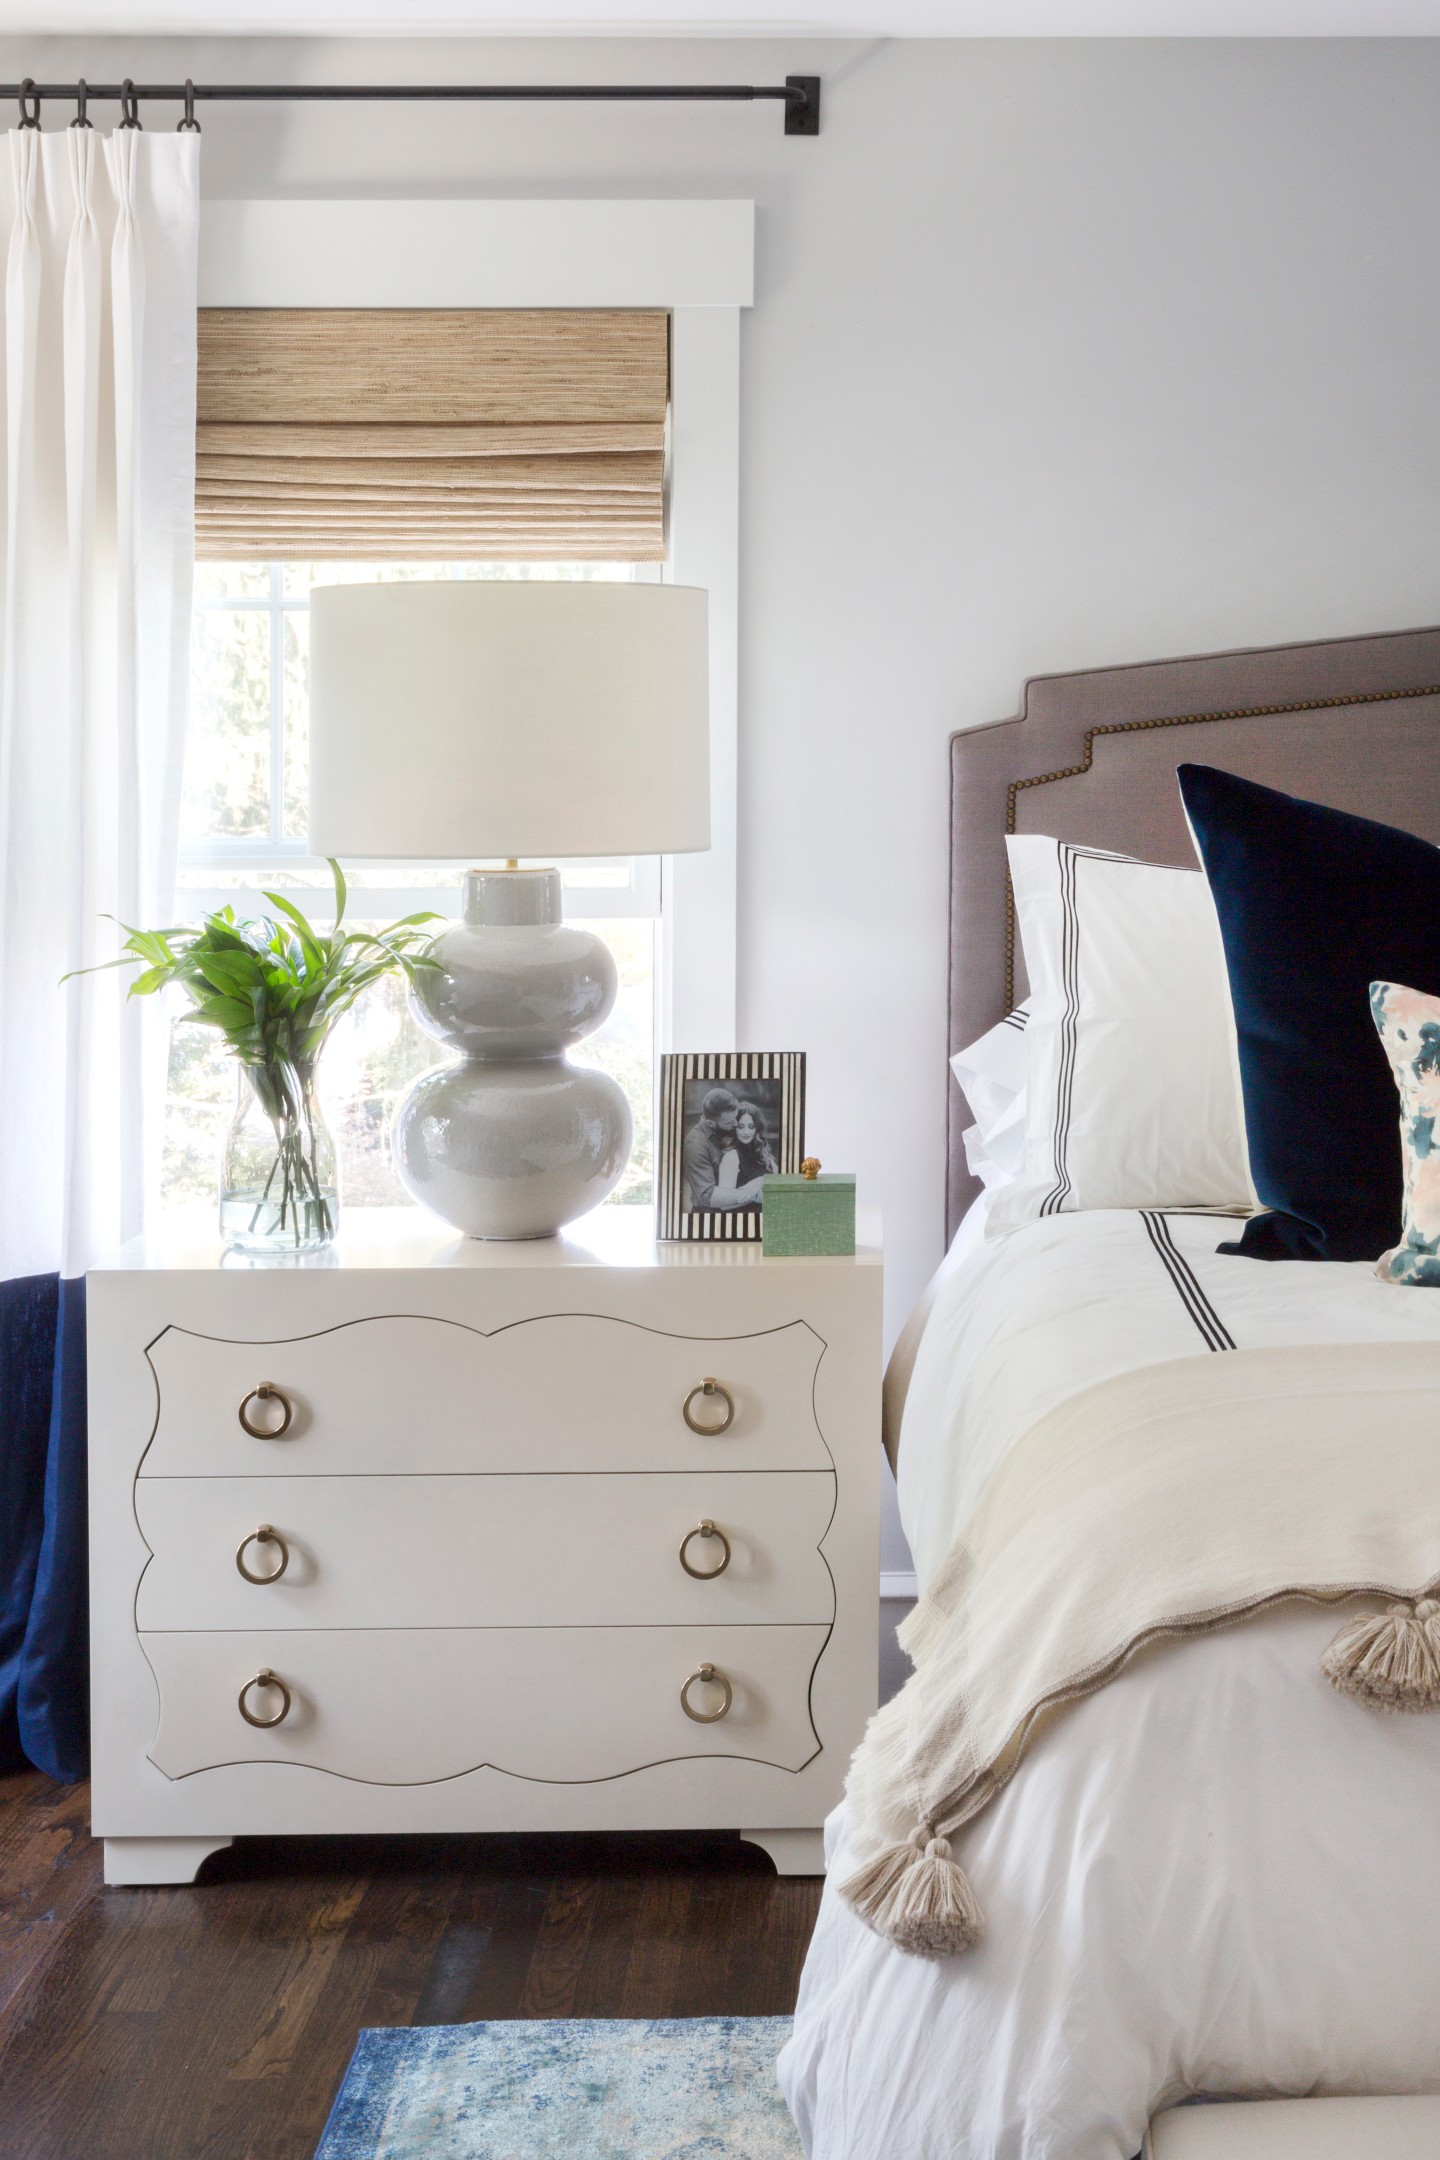 White nightstand next to master bed